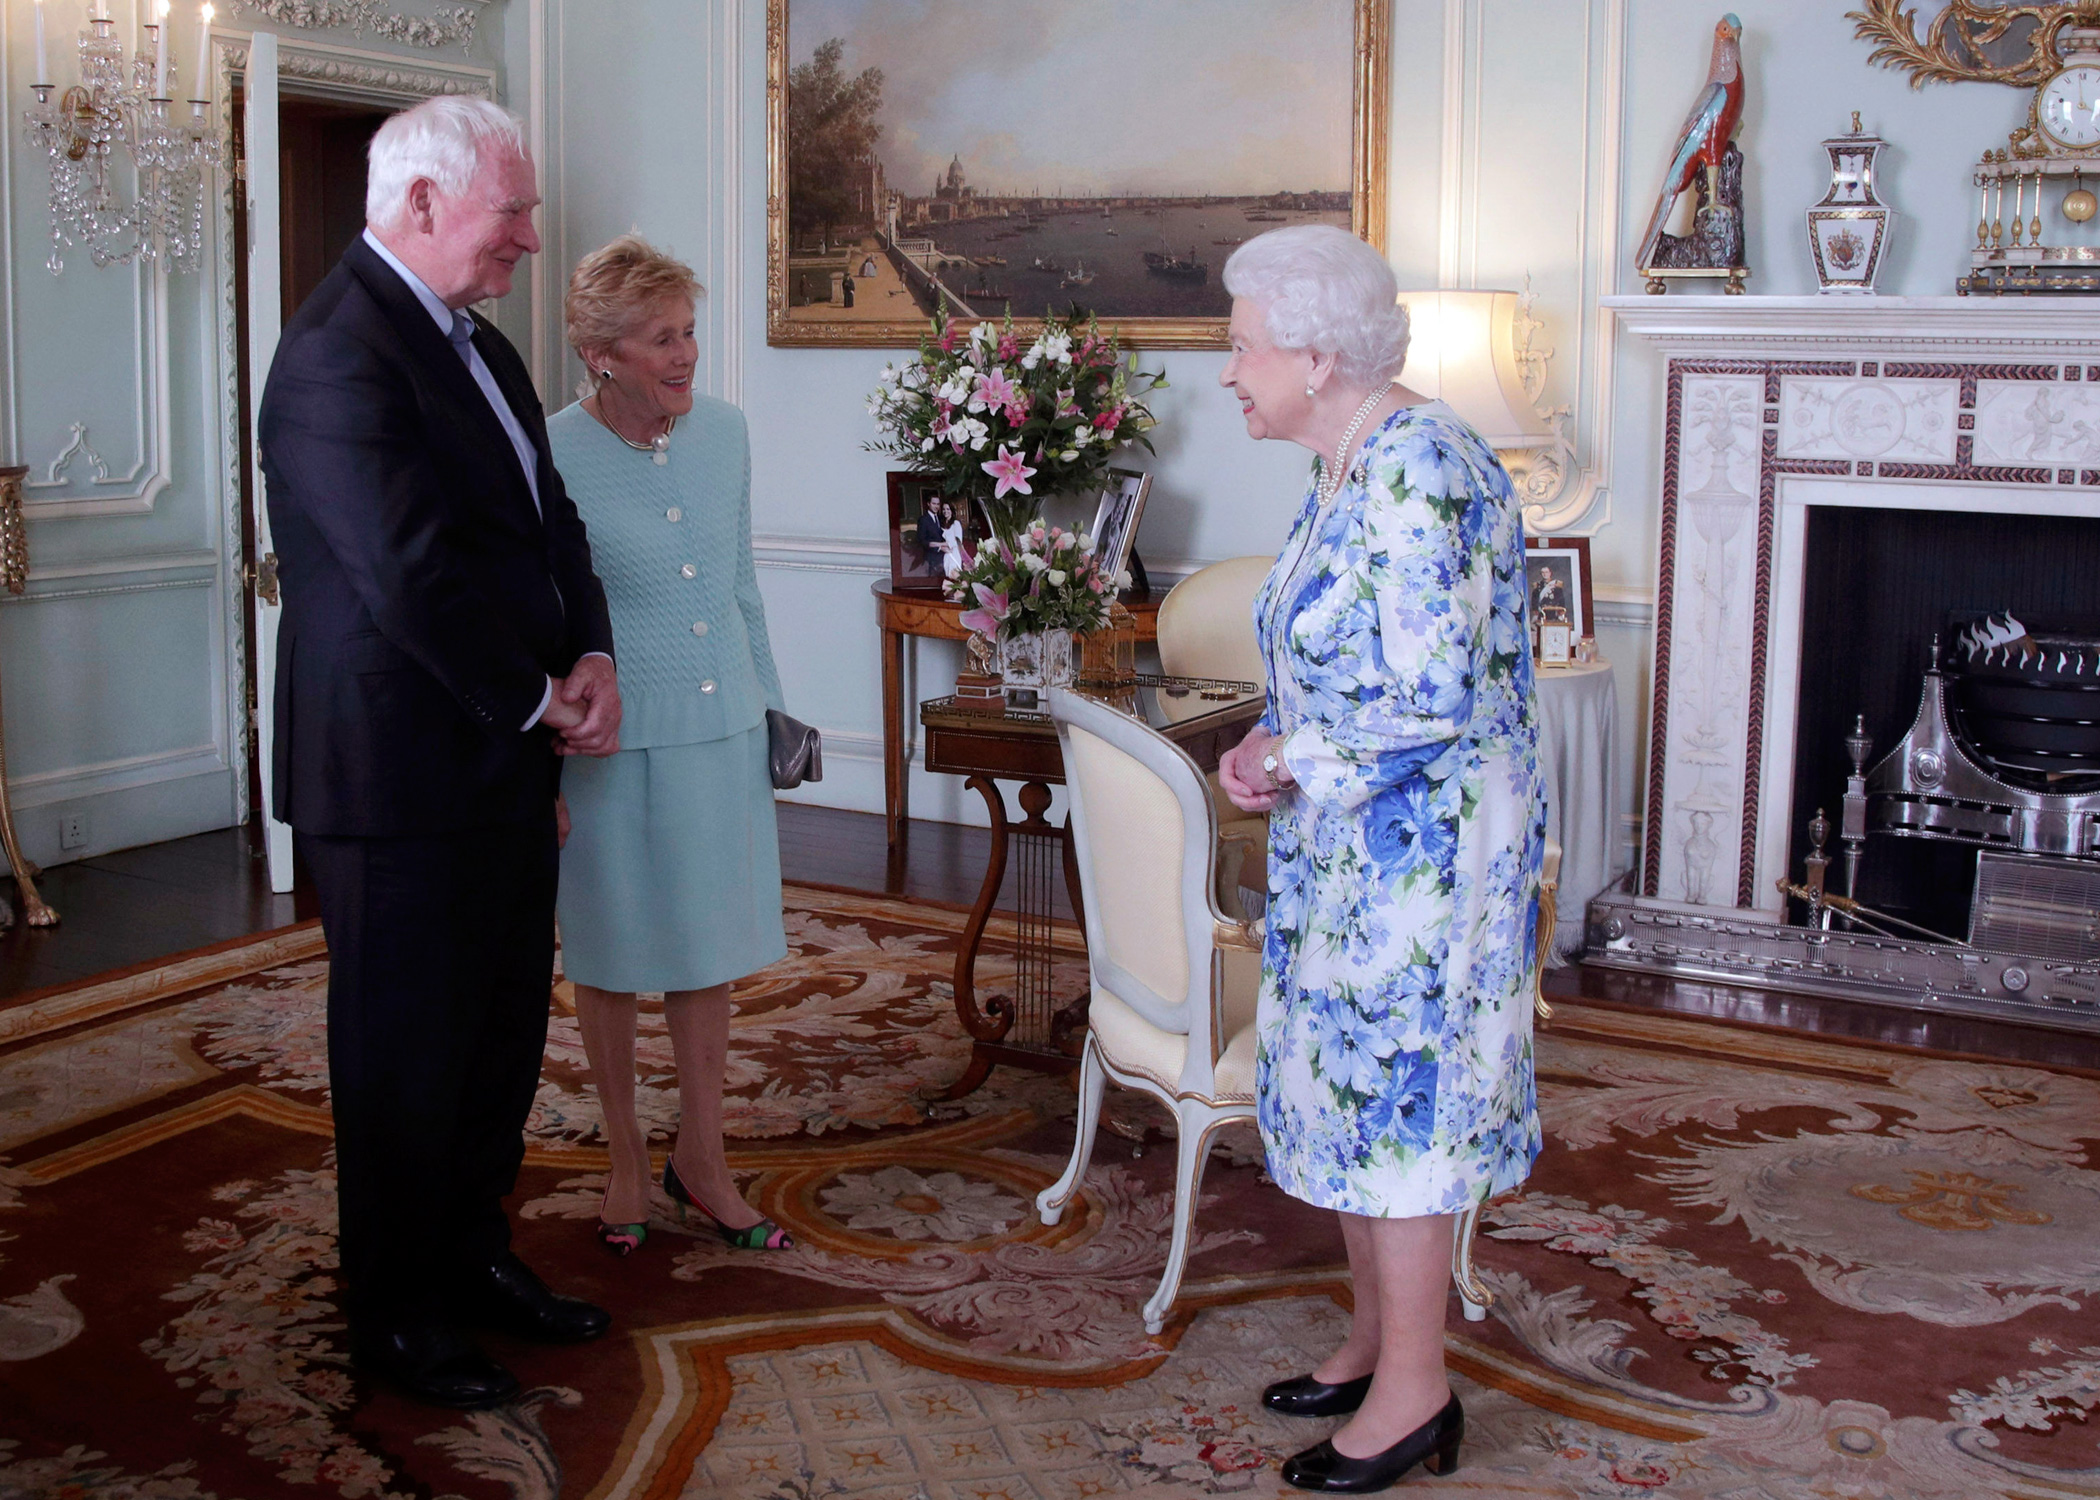 On July 18, 2017, Their Excellencies had a private audience with Her Majesty The Queen at Buckingham Palace. This meeting served as a farewell from the Governor General, whose term will come to an end in the fall of 2017.